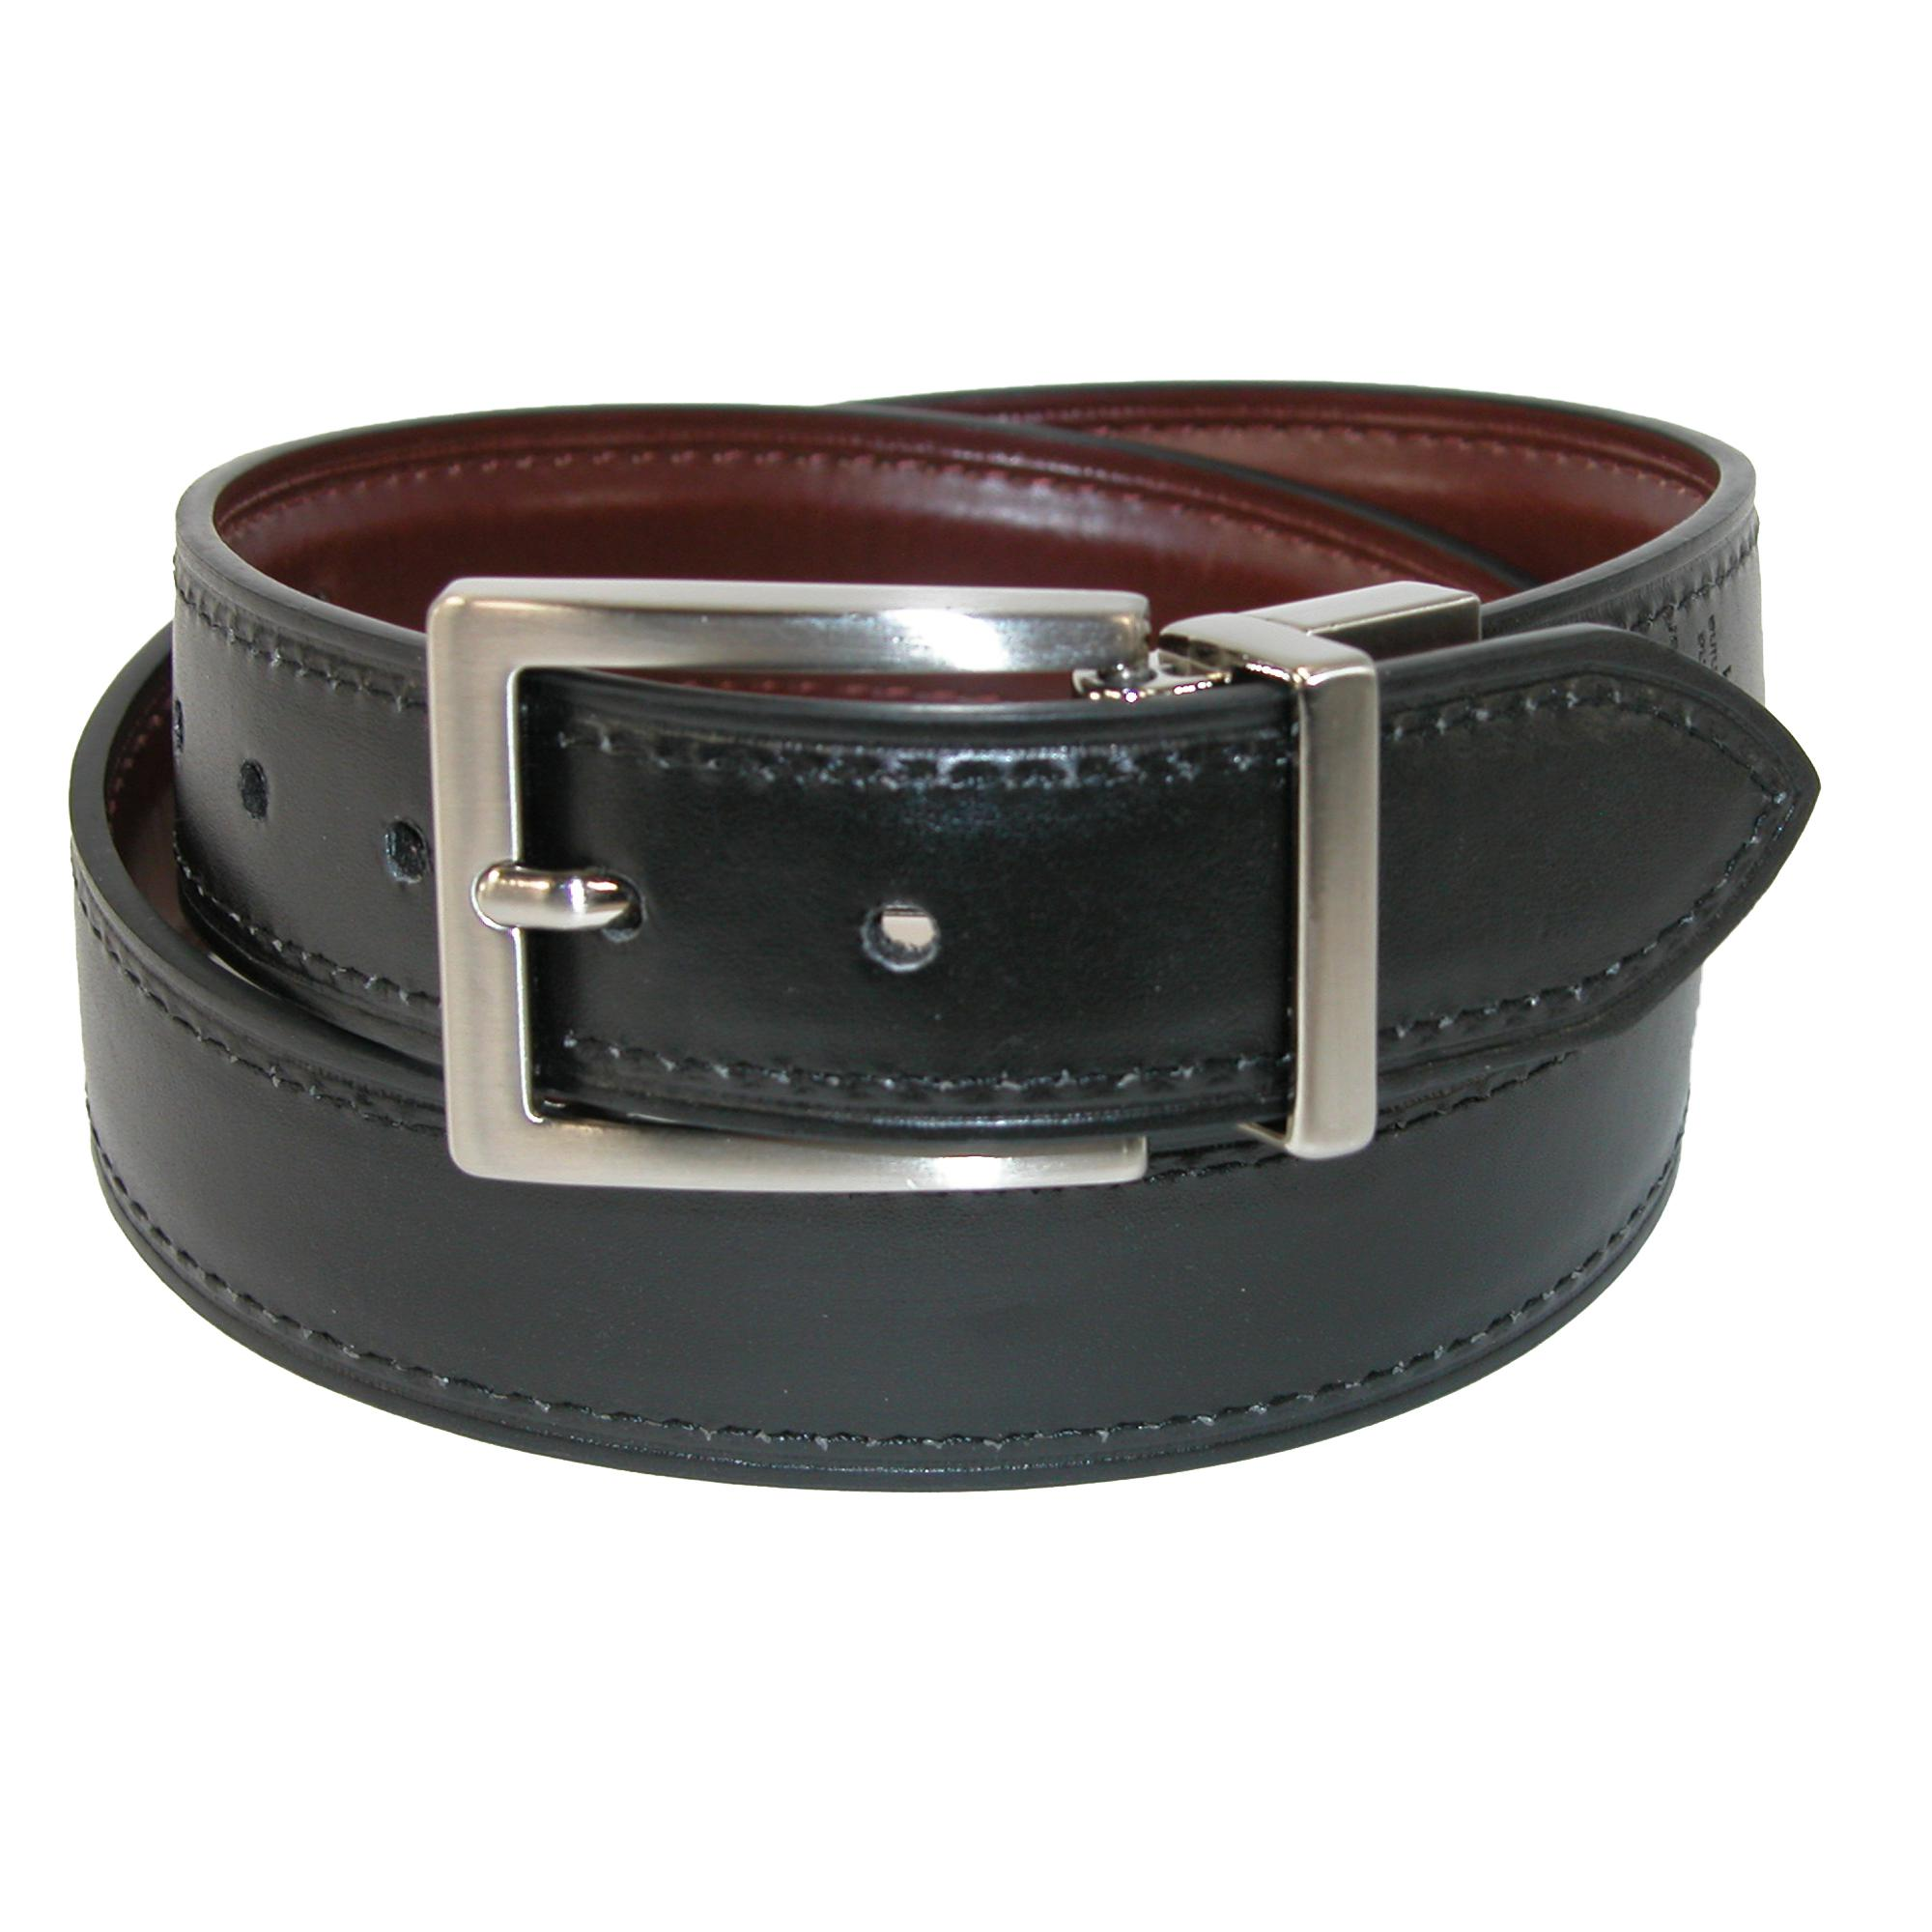 Details about New Dickies Boy's Feather Edge Reversible Dress Belt